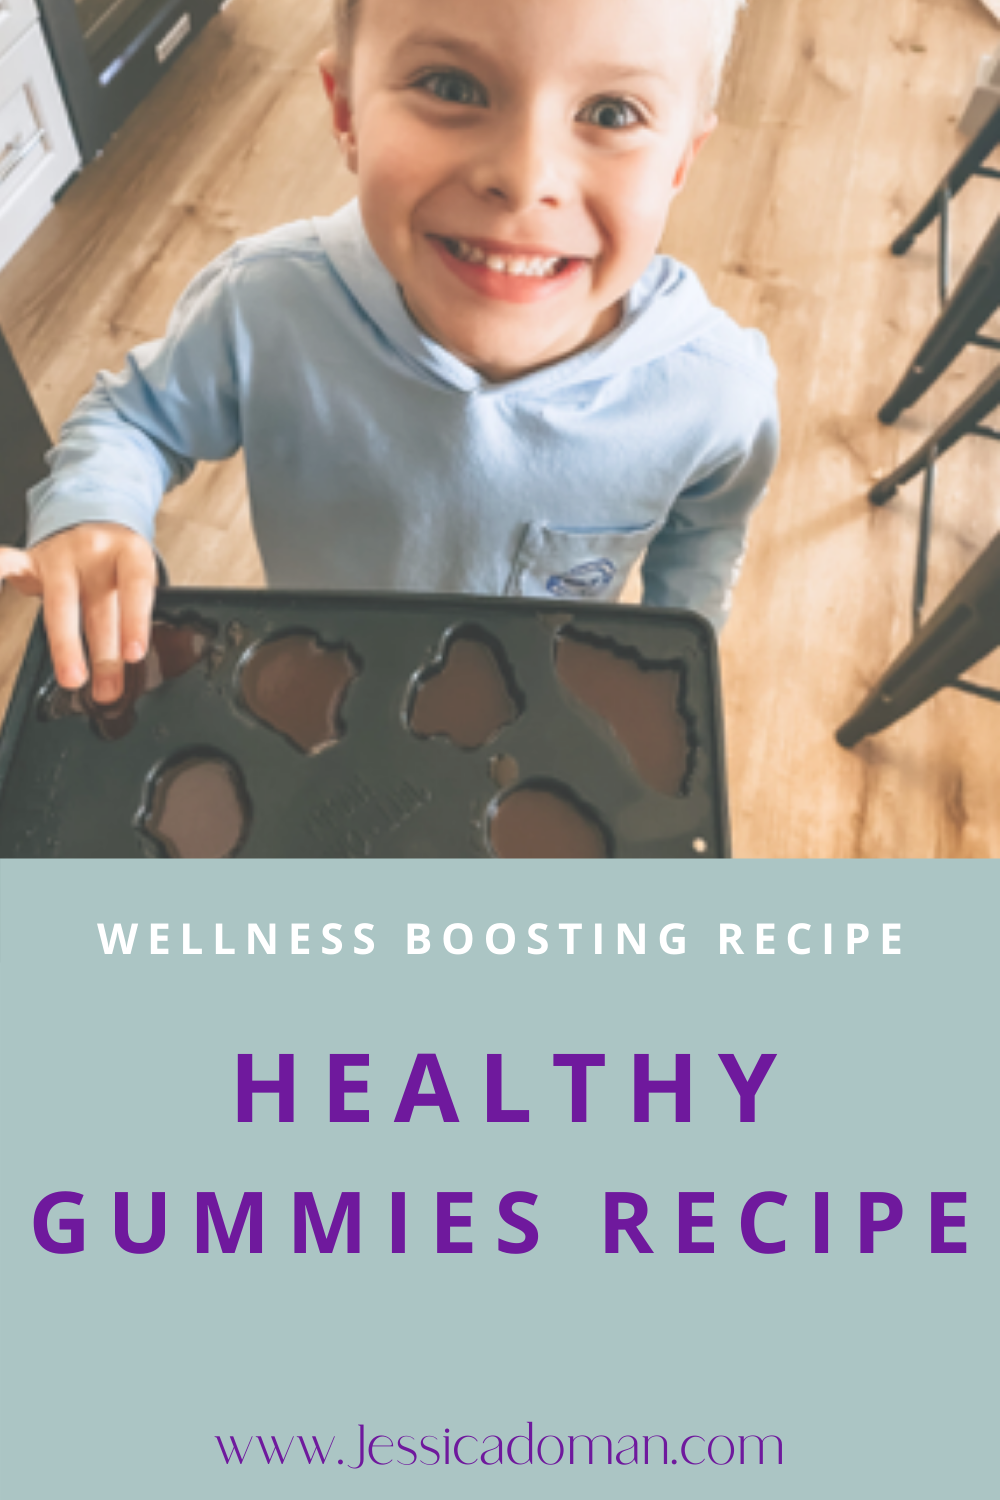 EASY healthy gummies recipe your kids will LOVE! DIY HEALTHY Gummies to boost your kids wellness this cold season! To learn how to make probiotic gummies, including benefits, head over to the blog for the recipe and benefits of these AMAZING Wellness Boosting Gummies!  How to Make Wellness Boosting Gummies | Healthy Gummies for kids | Healthy Gummies Recipe | Vitamin Gummies | Healthy Gummies Kids | Probiotic Gummies for Kids